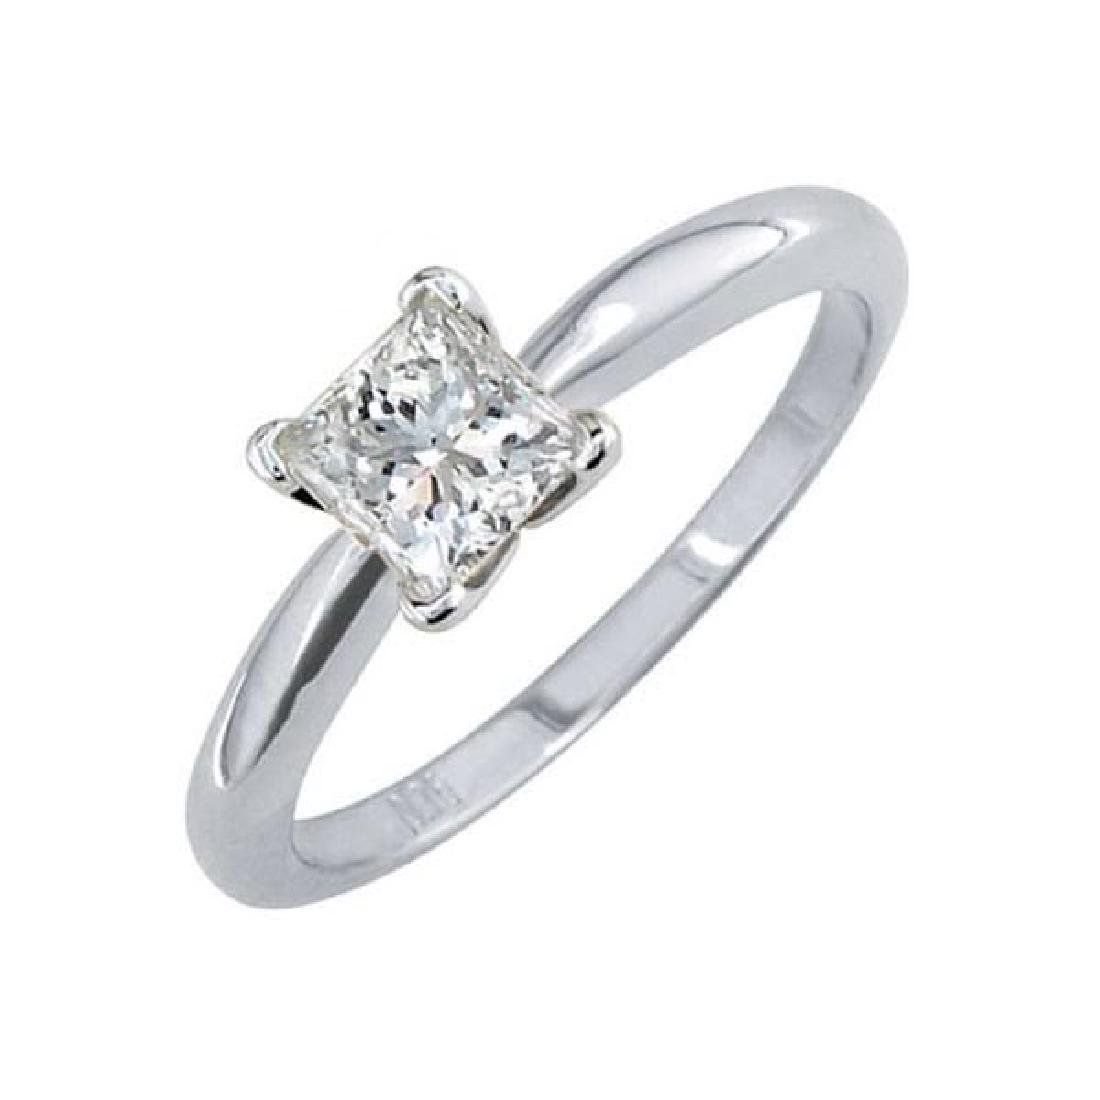 Certified 1.08 CTW Princess Diamond Solitaire 14k Ring